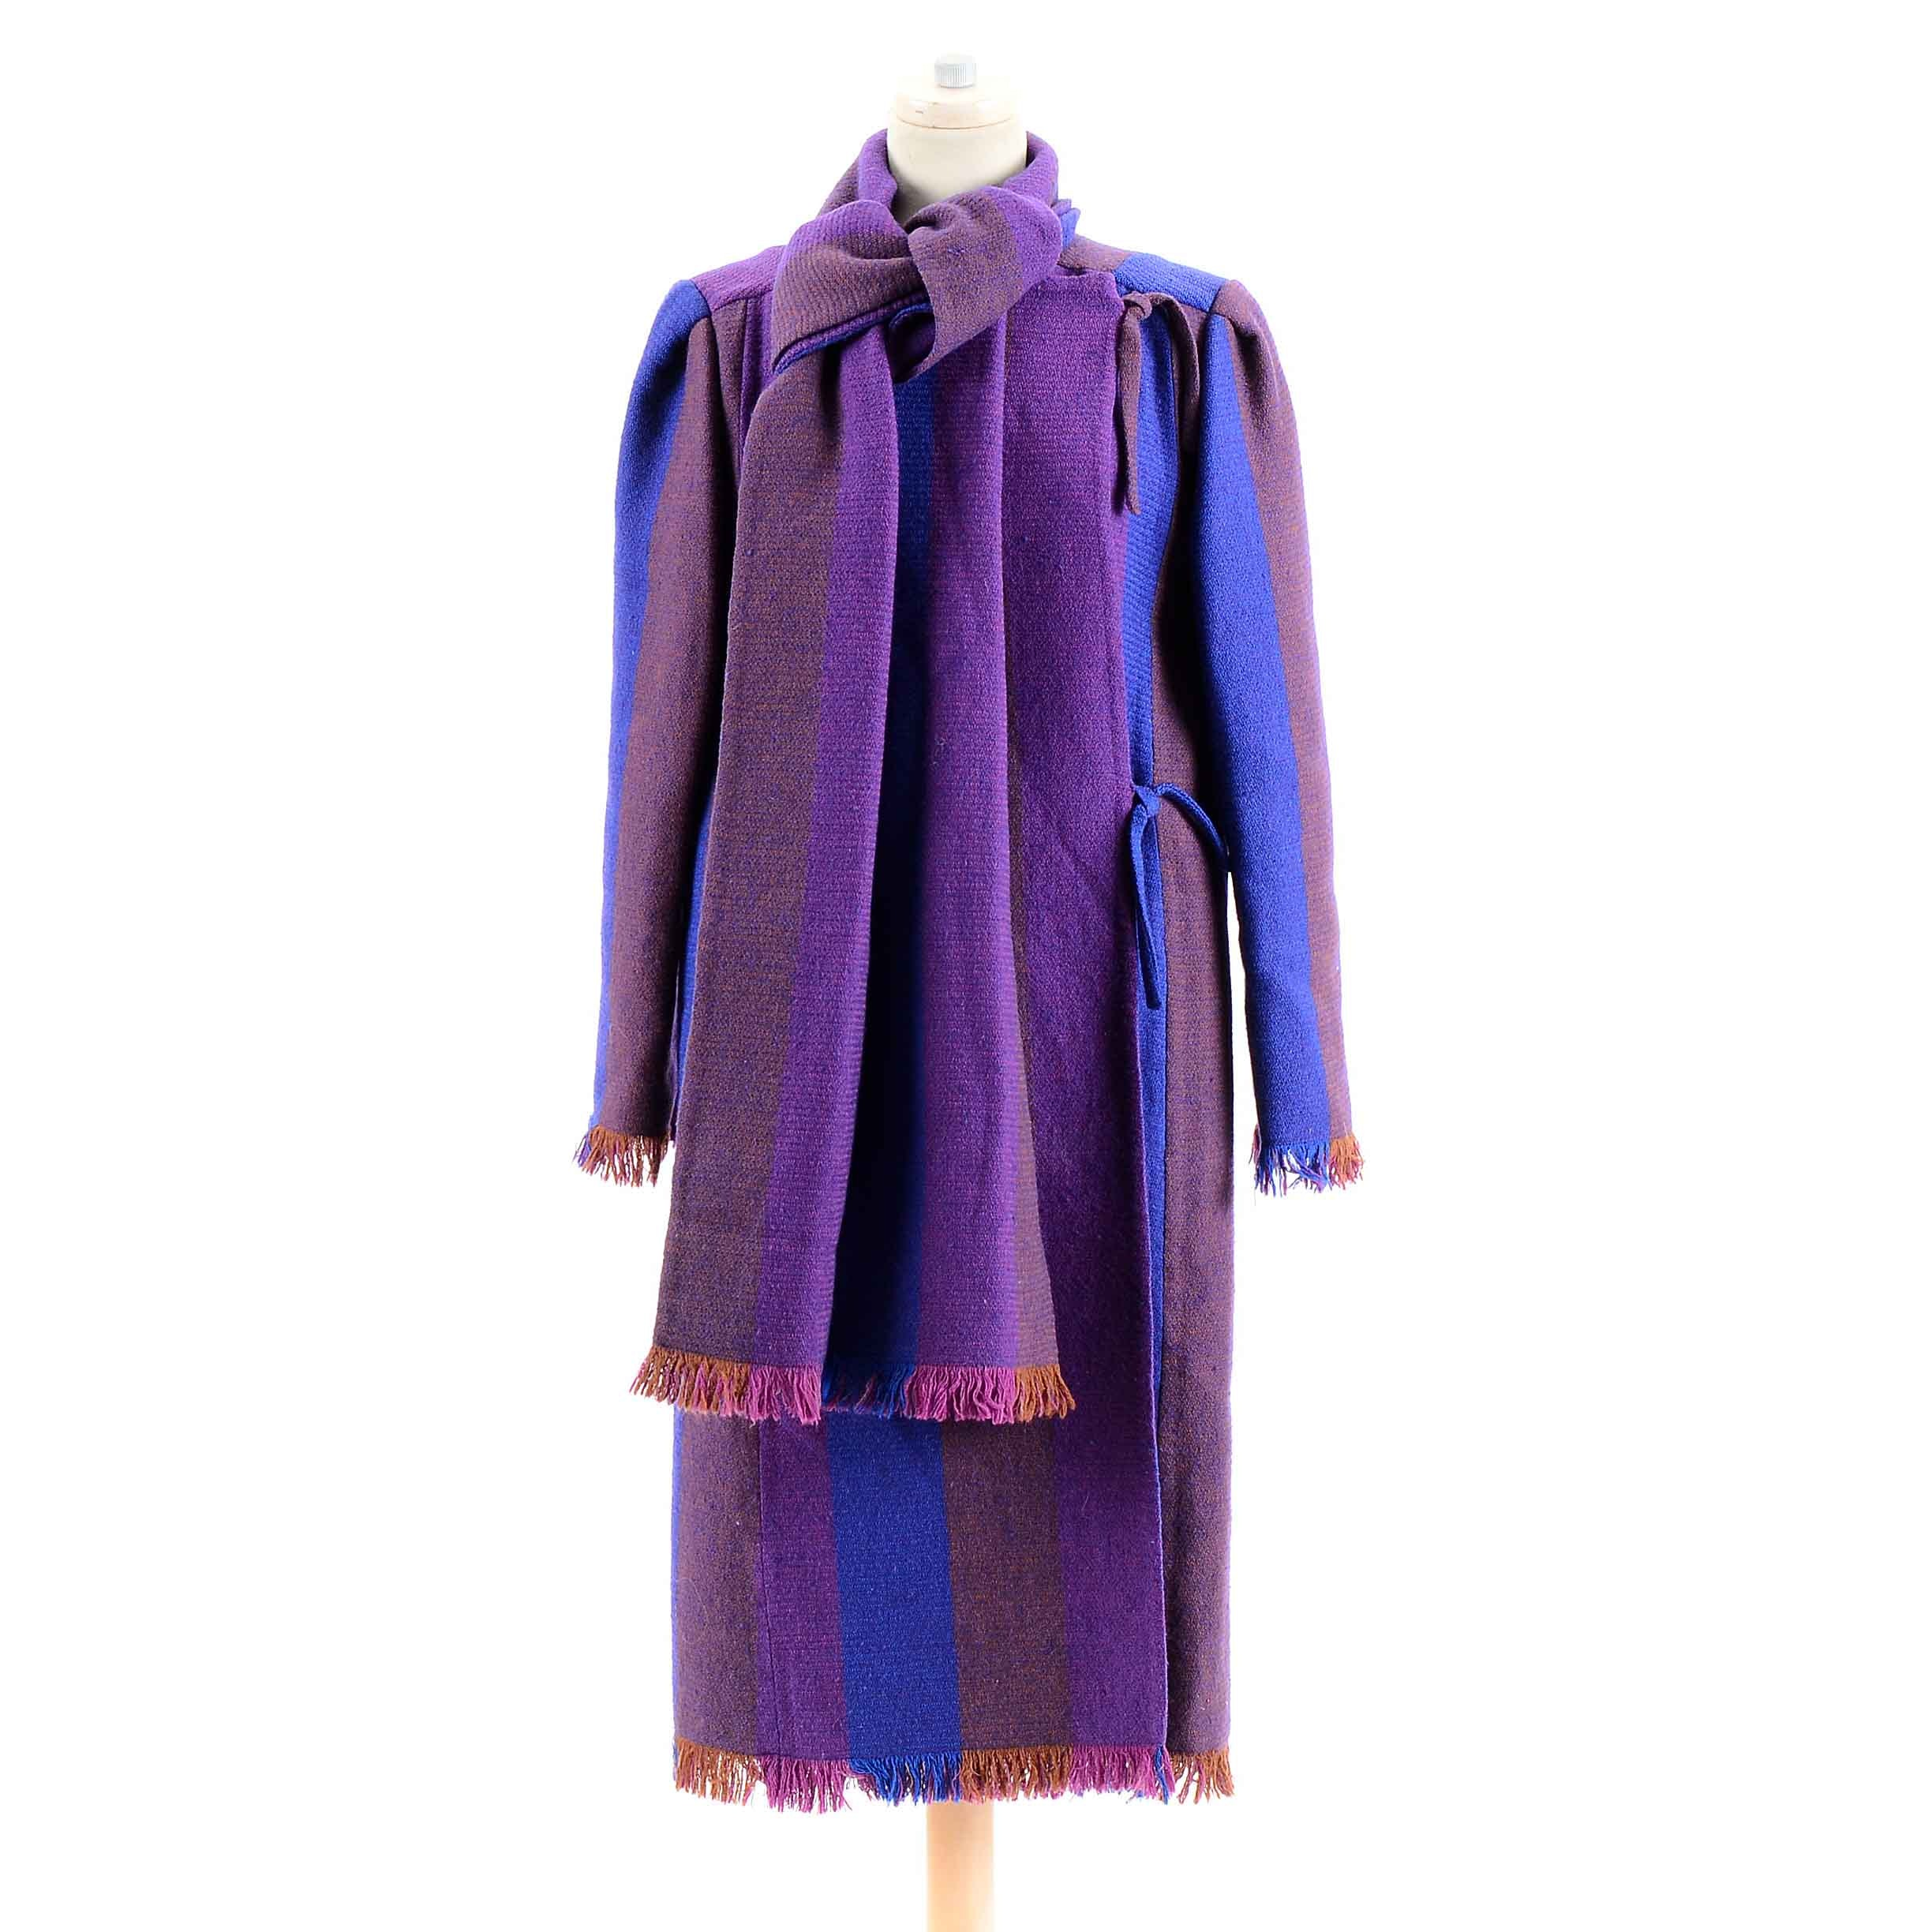 Women's Vintage Wool Color Block Coat